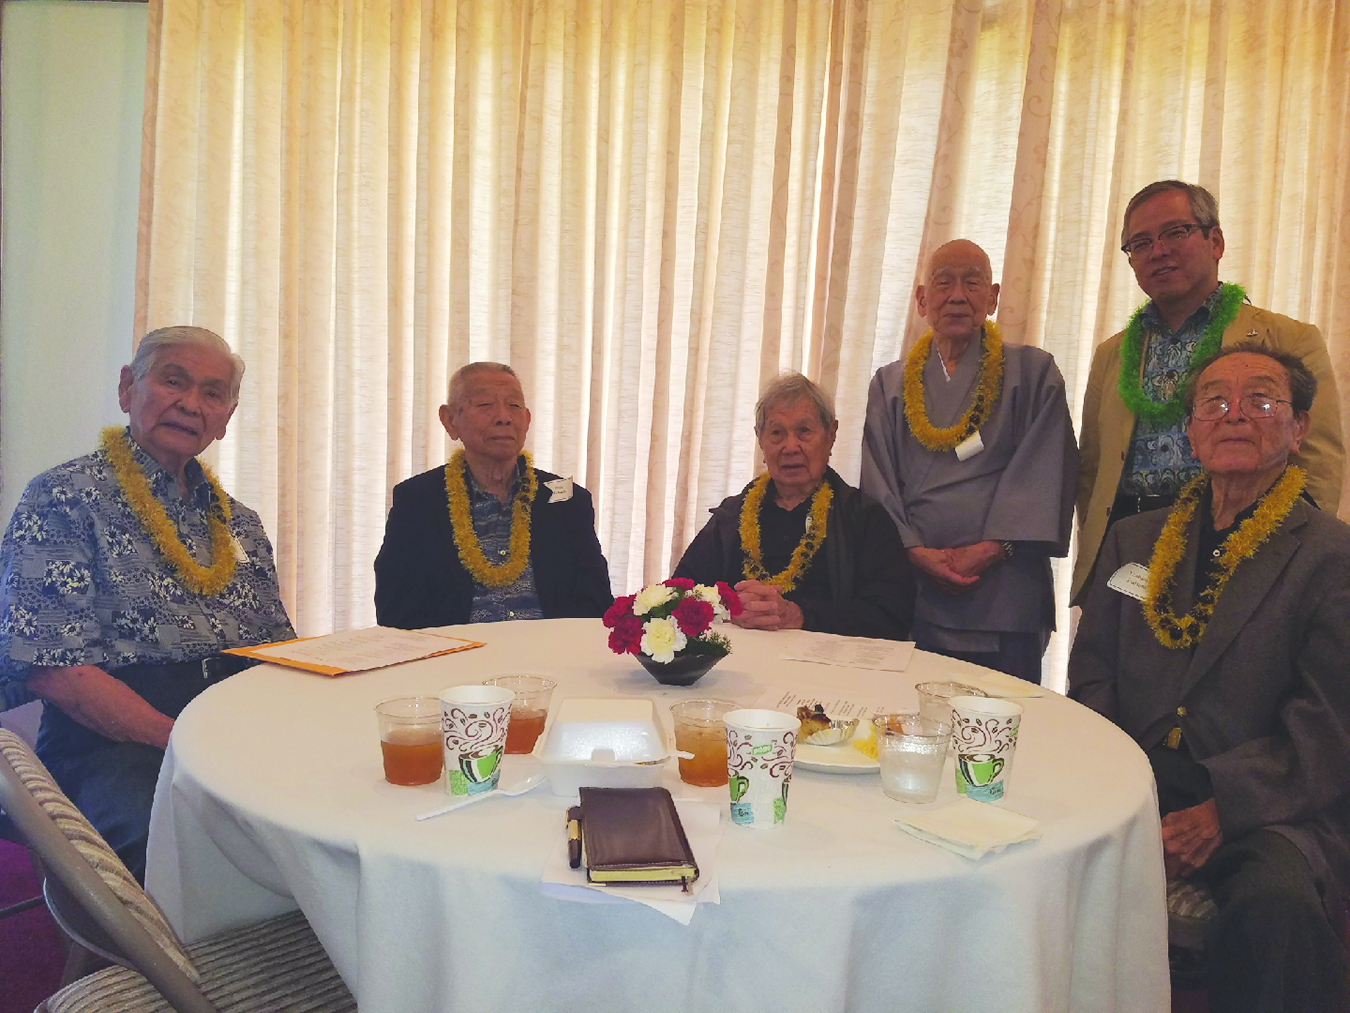 Several of the participants in the 2012 Zadankai (seated, from left) — former Gov. George Ariyoshi, Dr. Fujio Matsuda, Ted Tsukiyama and the Rev. Yoshiaki Fujitani, along with (standing, left) Bishop Ryokan Ara and Consul General of Japan Koichi Ito.